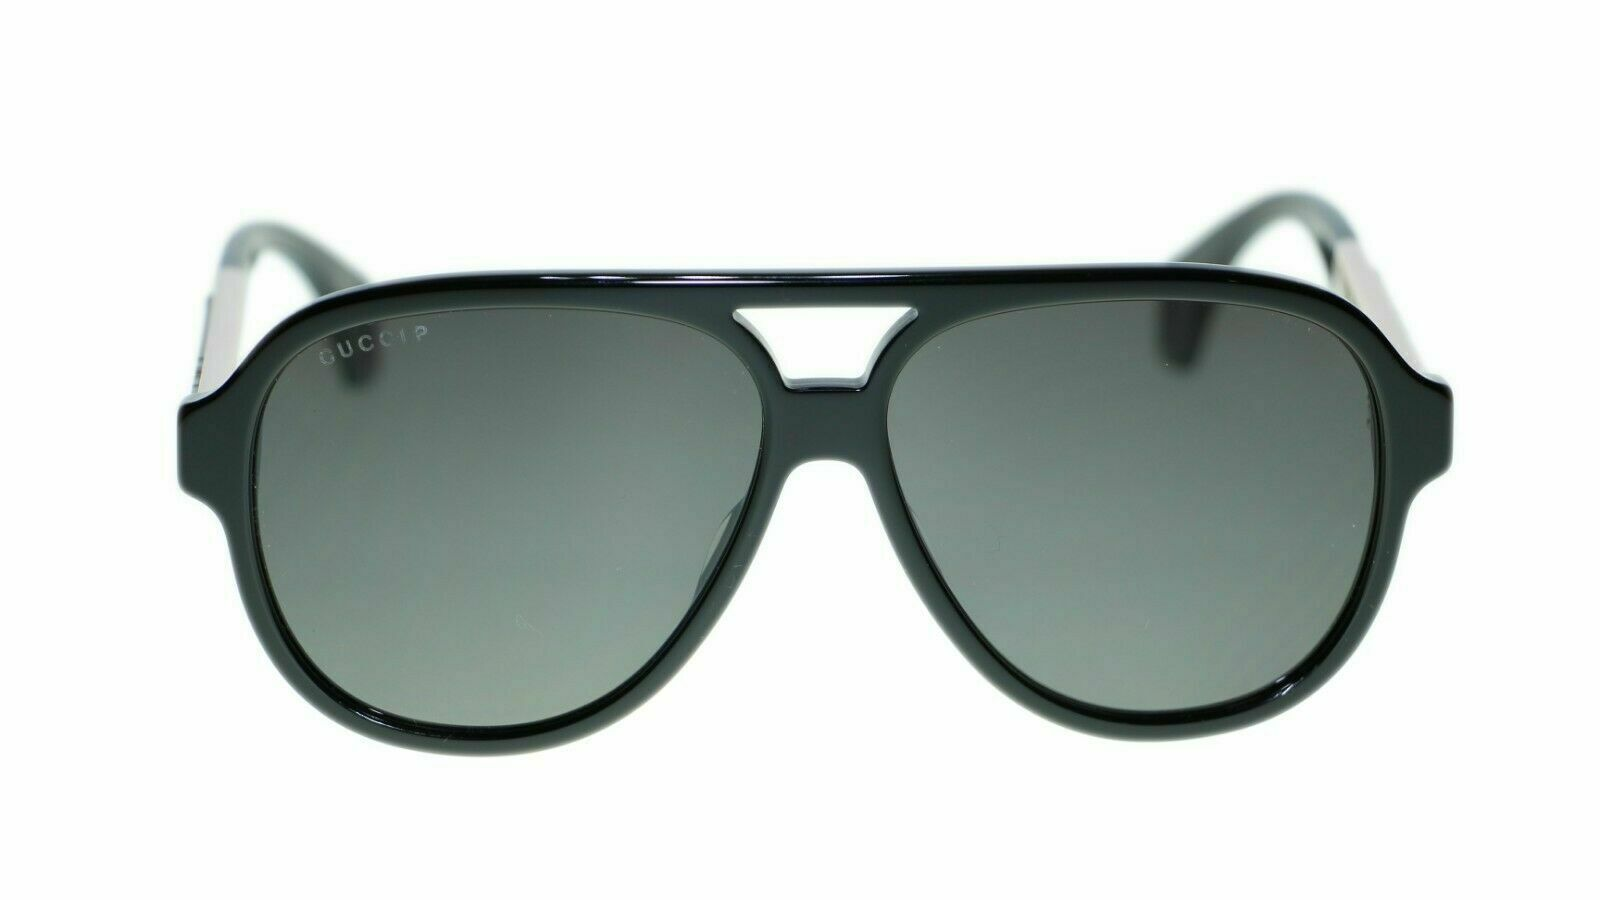 NEW Gucci GG0463S  002 Black Frame Grey Lens Polarized Authentic Sunglasses